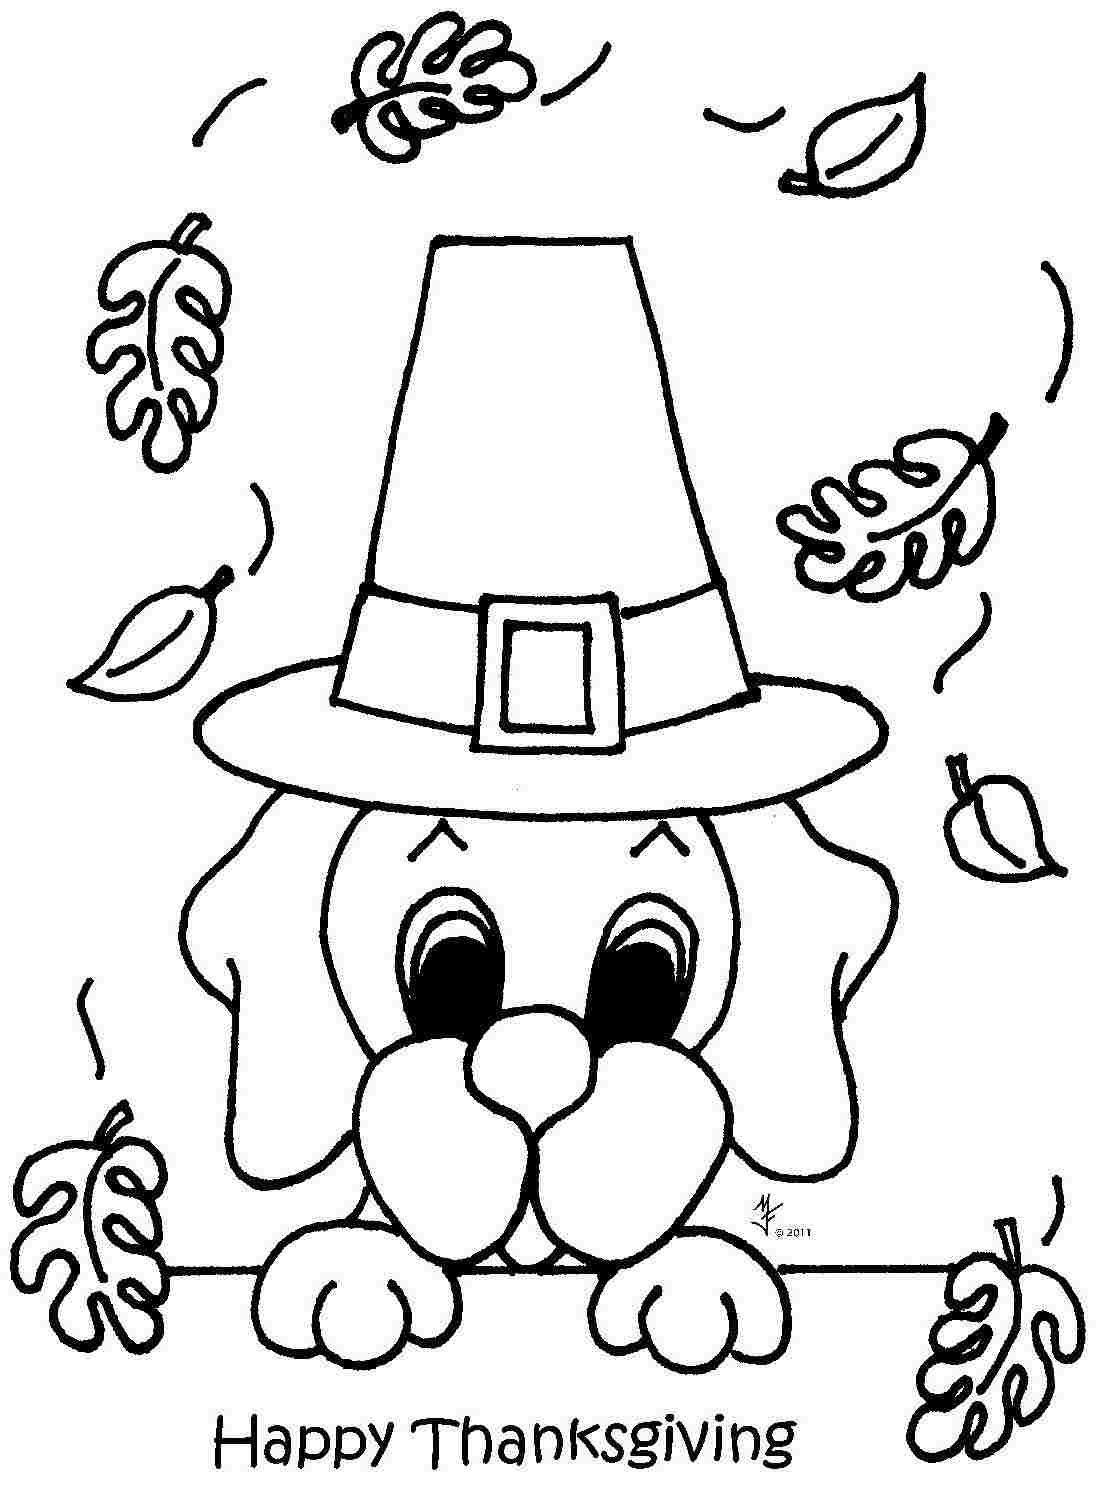 Impressive Design Thanksgiving Coloring Pages Happy Thanksgiving Gallery Of Leaf Coloring Pages for Preschool Gallery